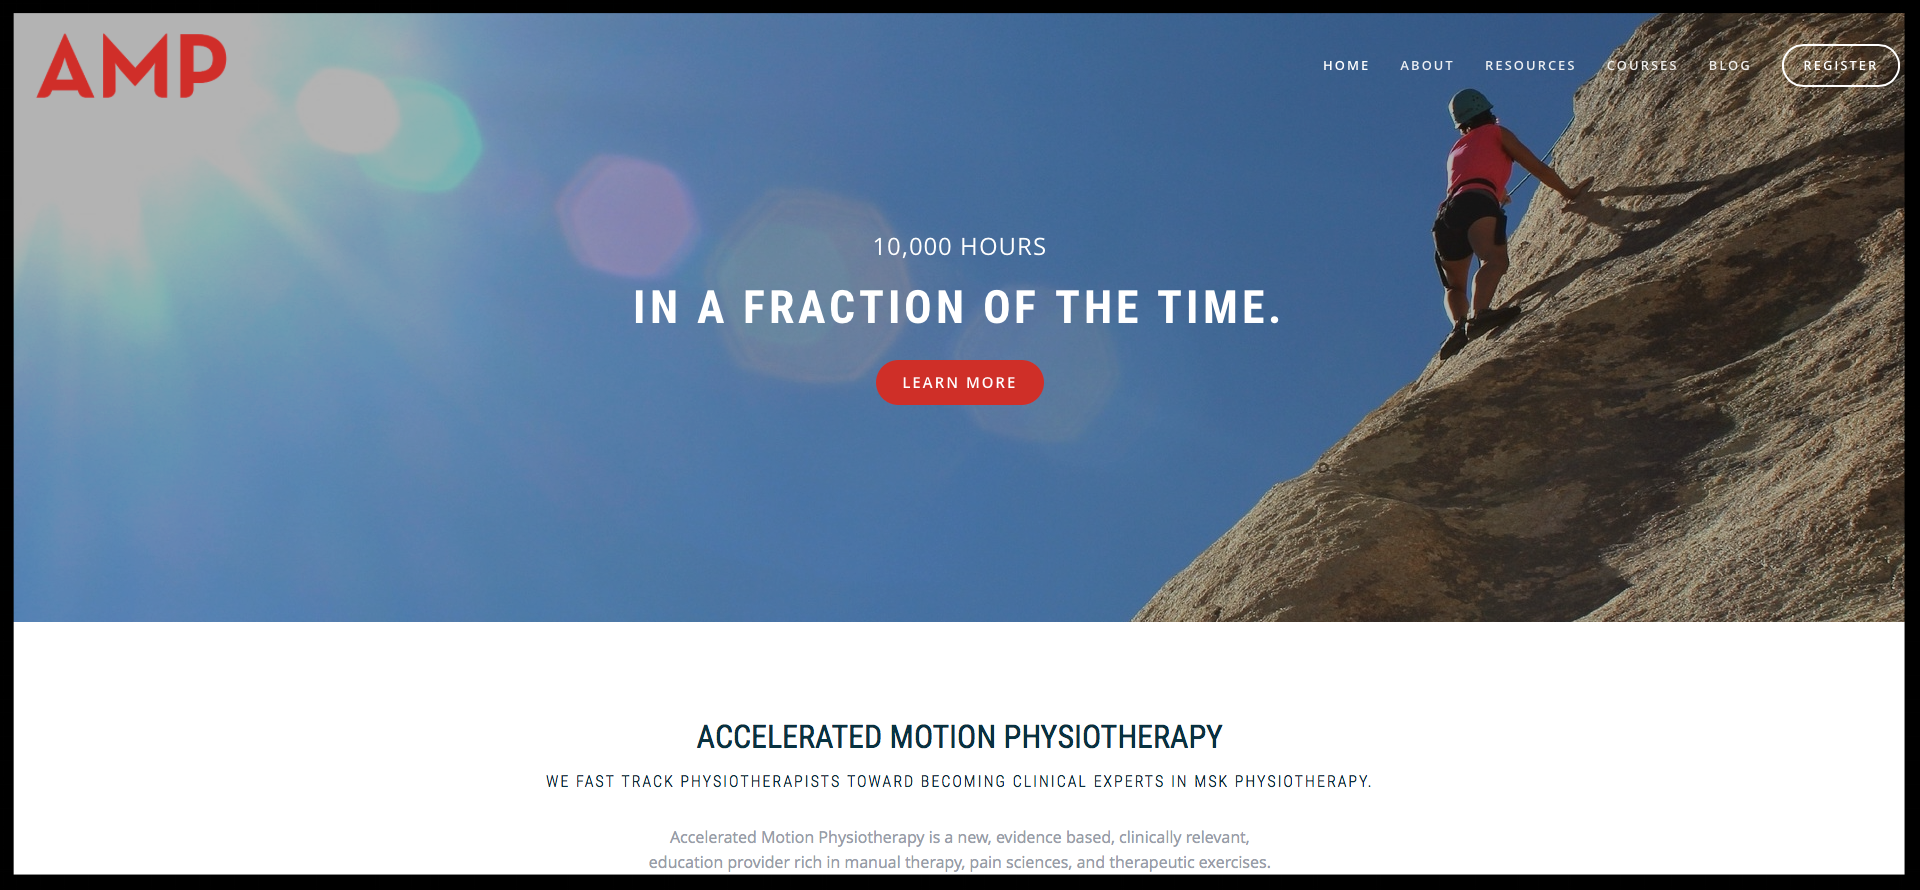 Accelerated Motion Physiotherapy